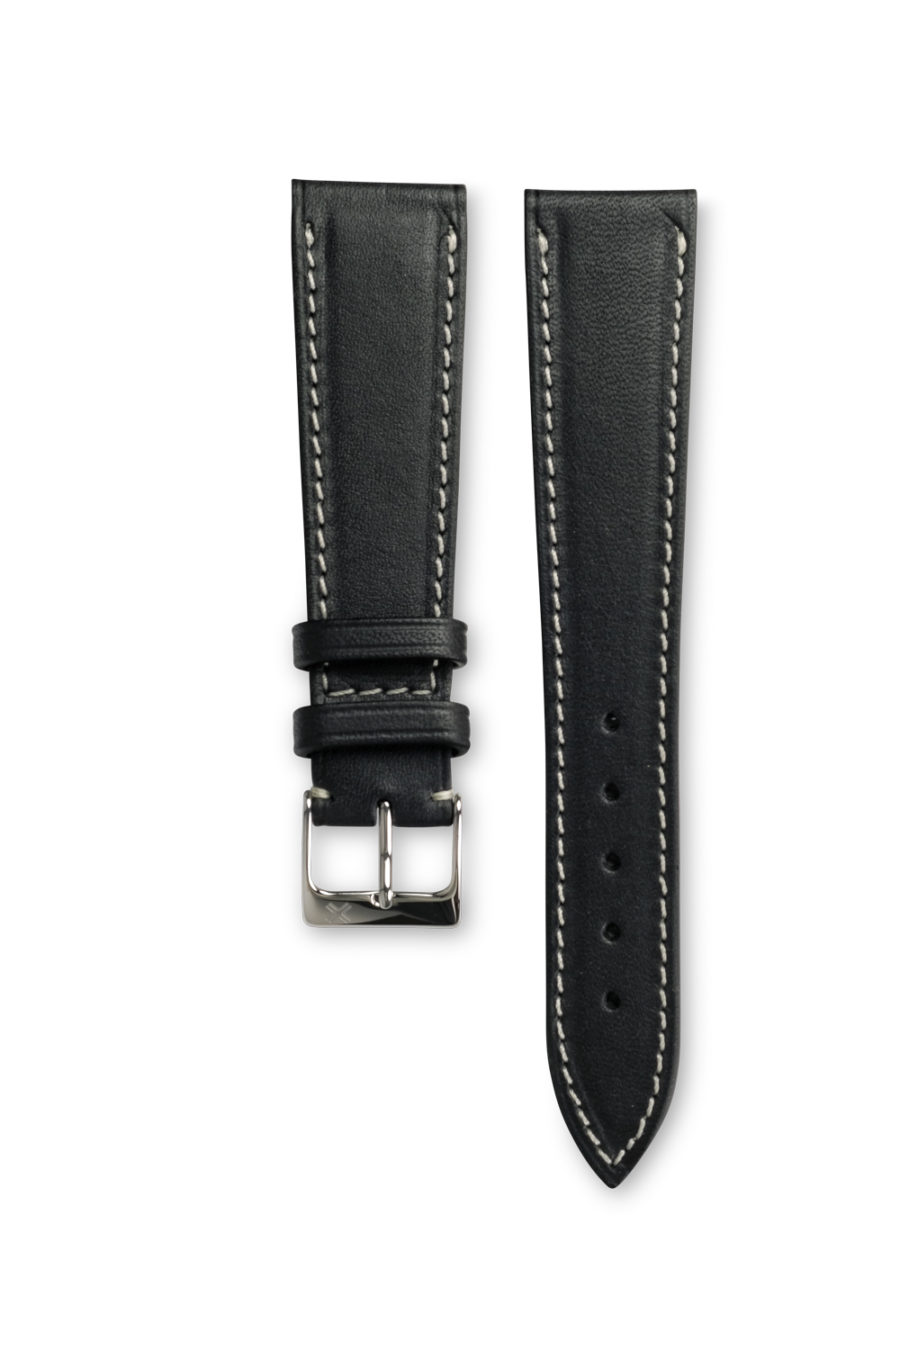 Smooth Classic Barenia deep black leather watch strap - cream stitching - LUGS brand